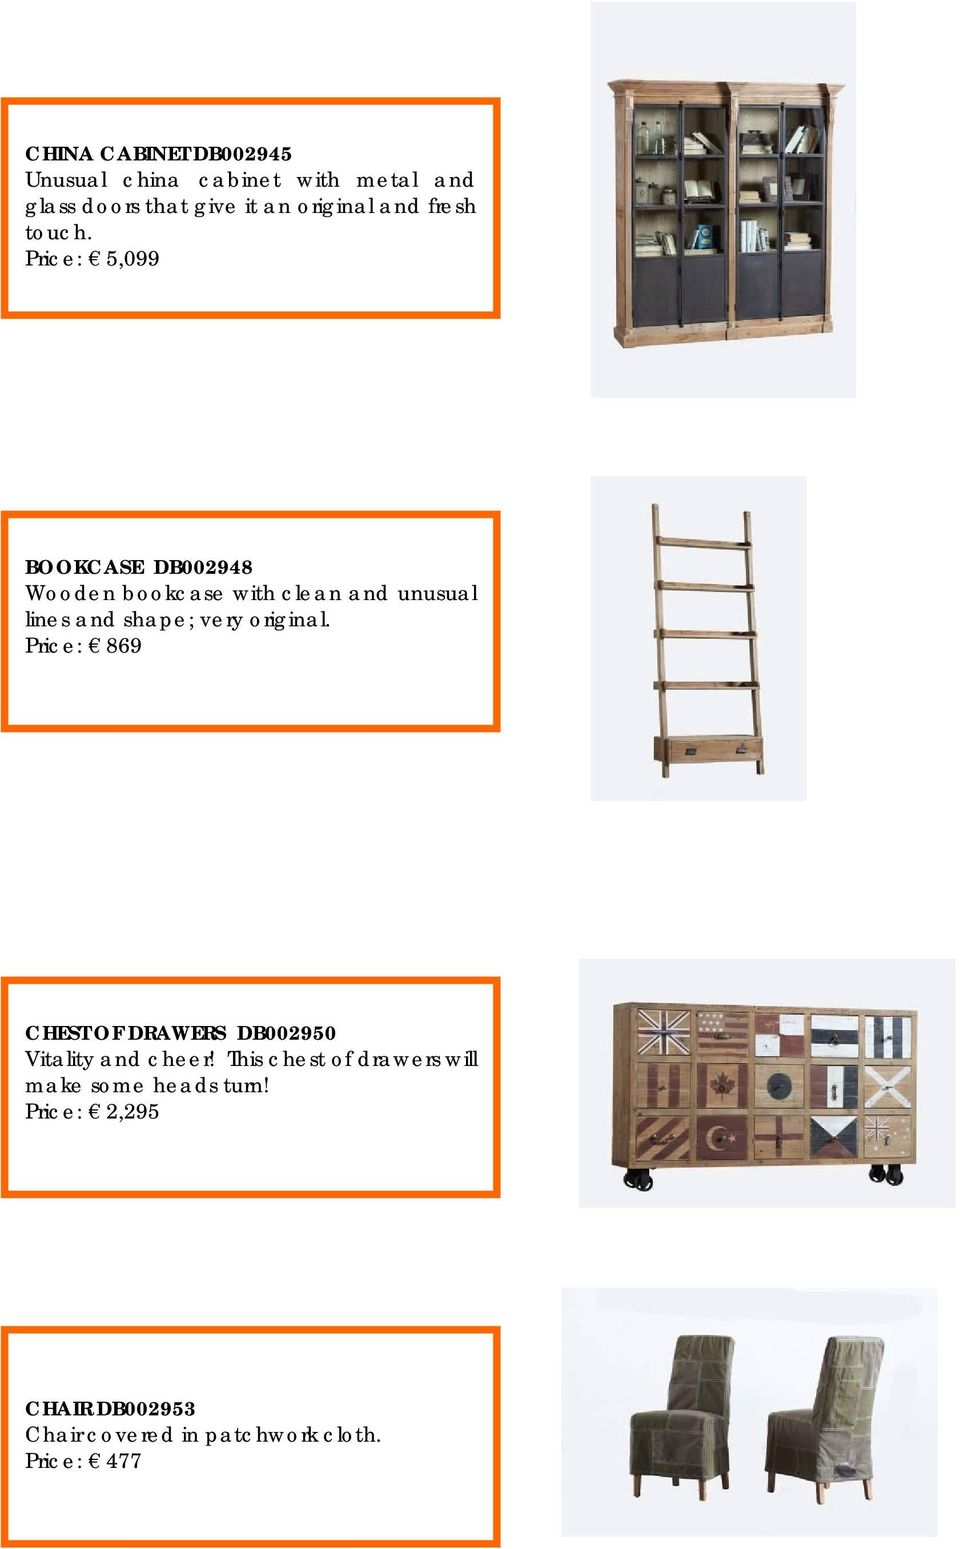 Price: 5,099 BOOKCASE DB002948 Wooden bookcase with clean and unusual lines and shape; very